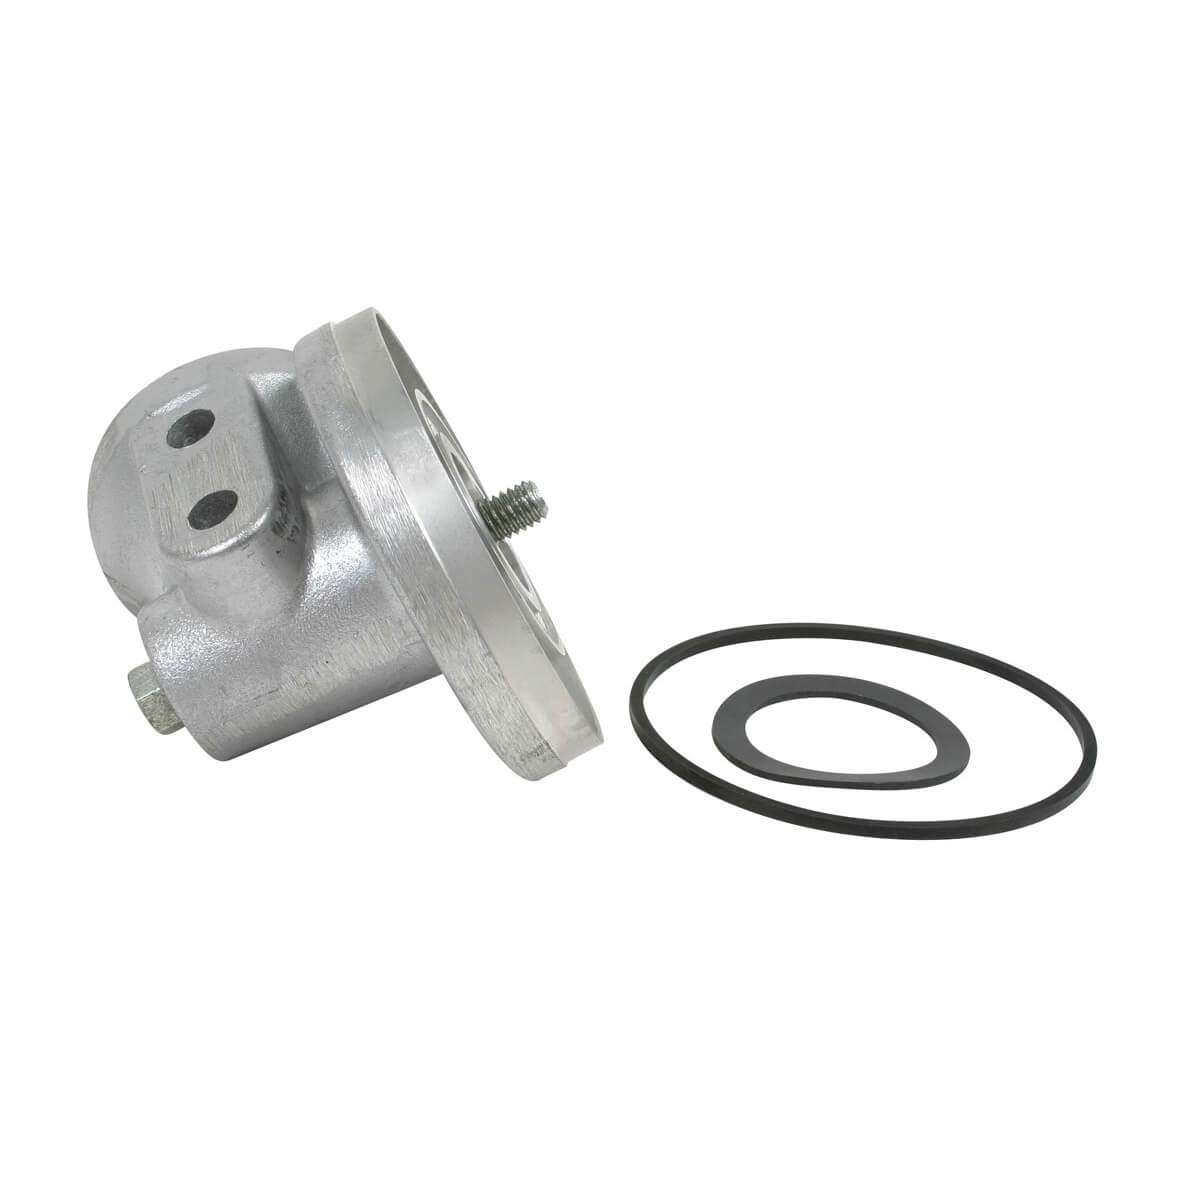 635 820 Spin On Oil Filter Adapter Conversion Moss Motors